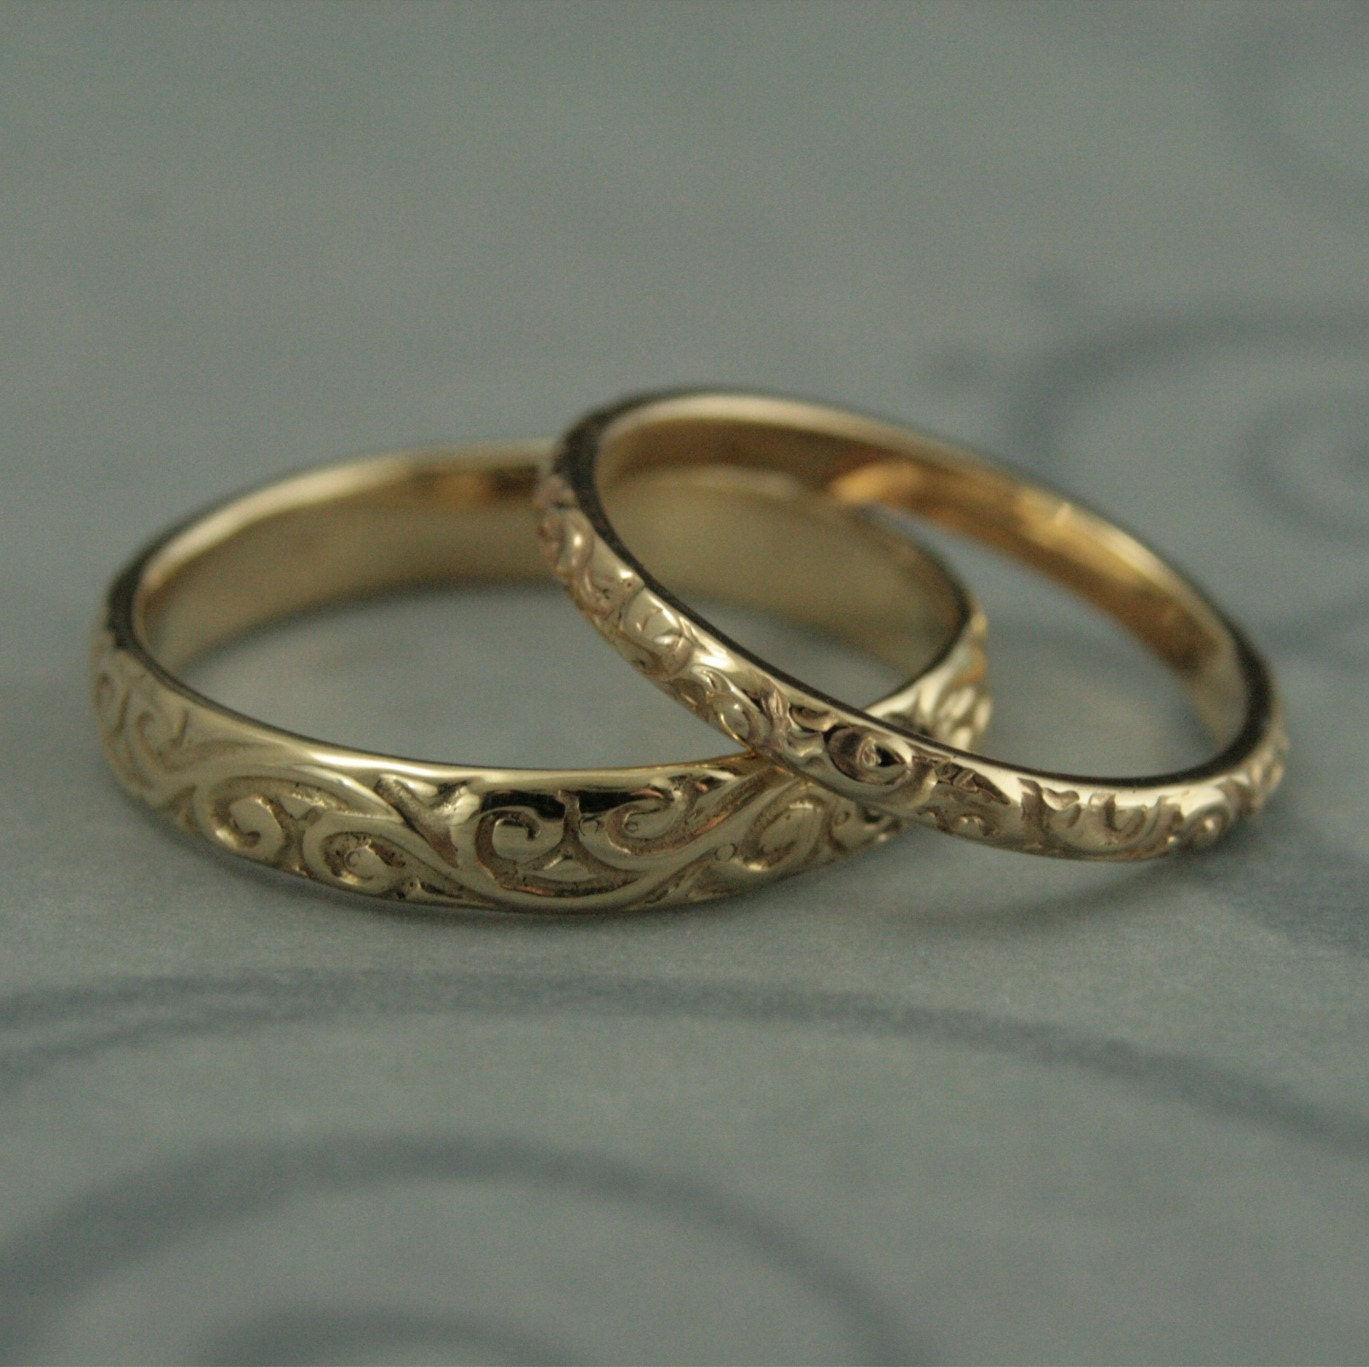 vintage style ring vintage style wedding rings Patterned Wedding Band Set Vintage Style Wedding Rings His and Hers Set Antique Style Rings 14K Gold Rococo Flourish Set His and Hers Bands